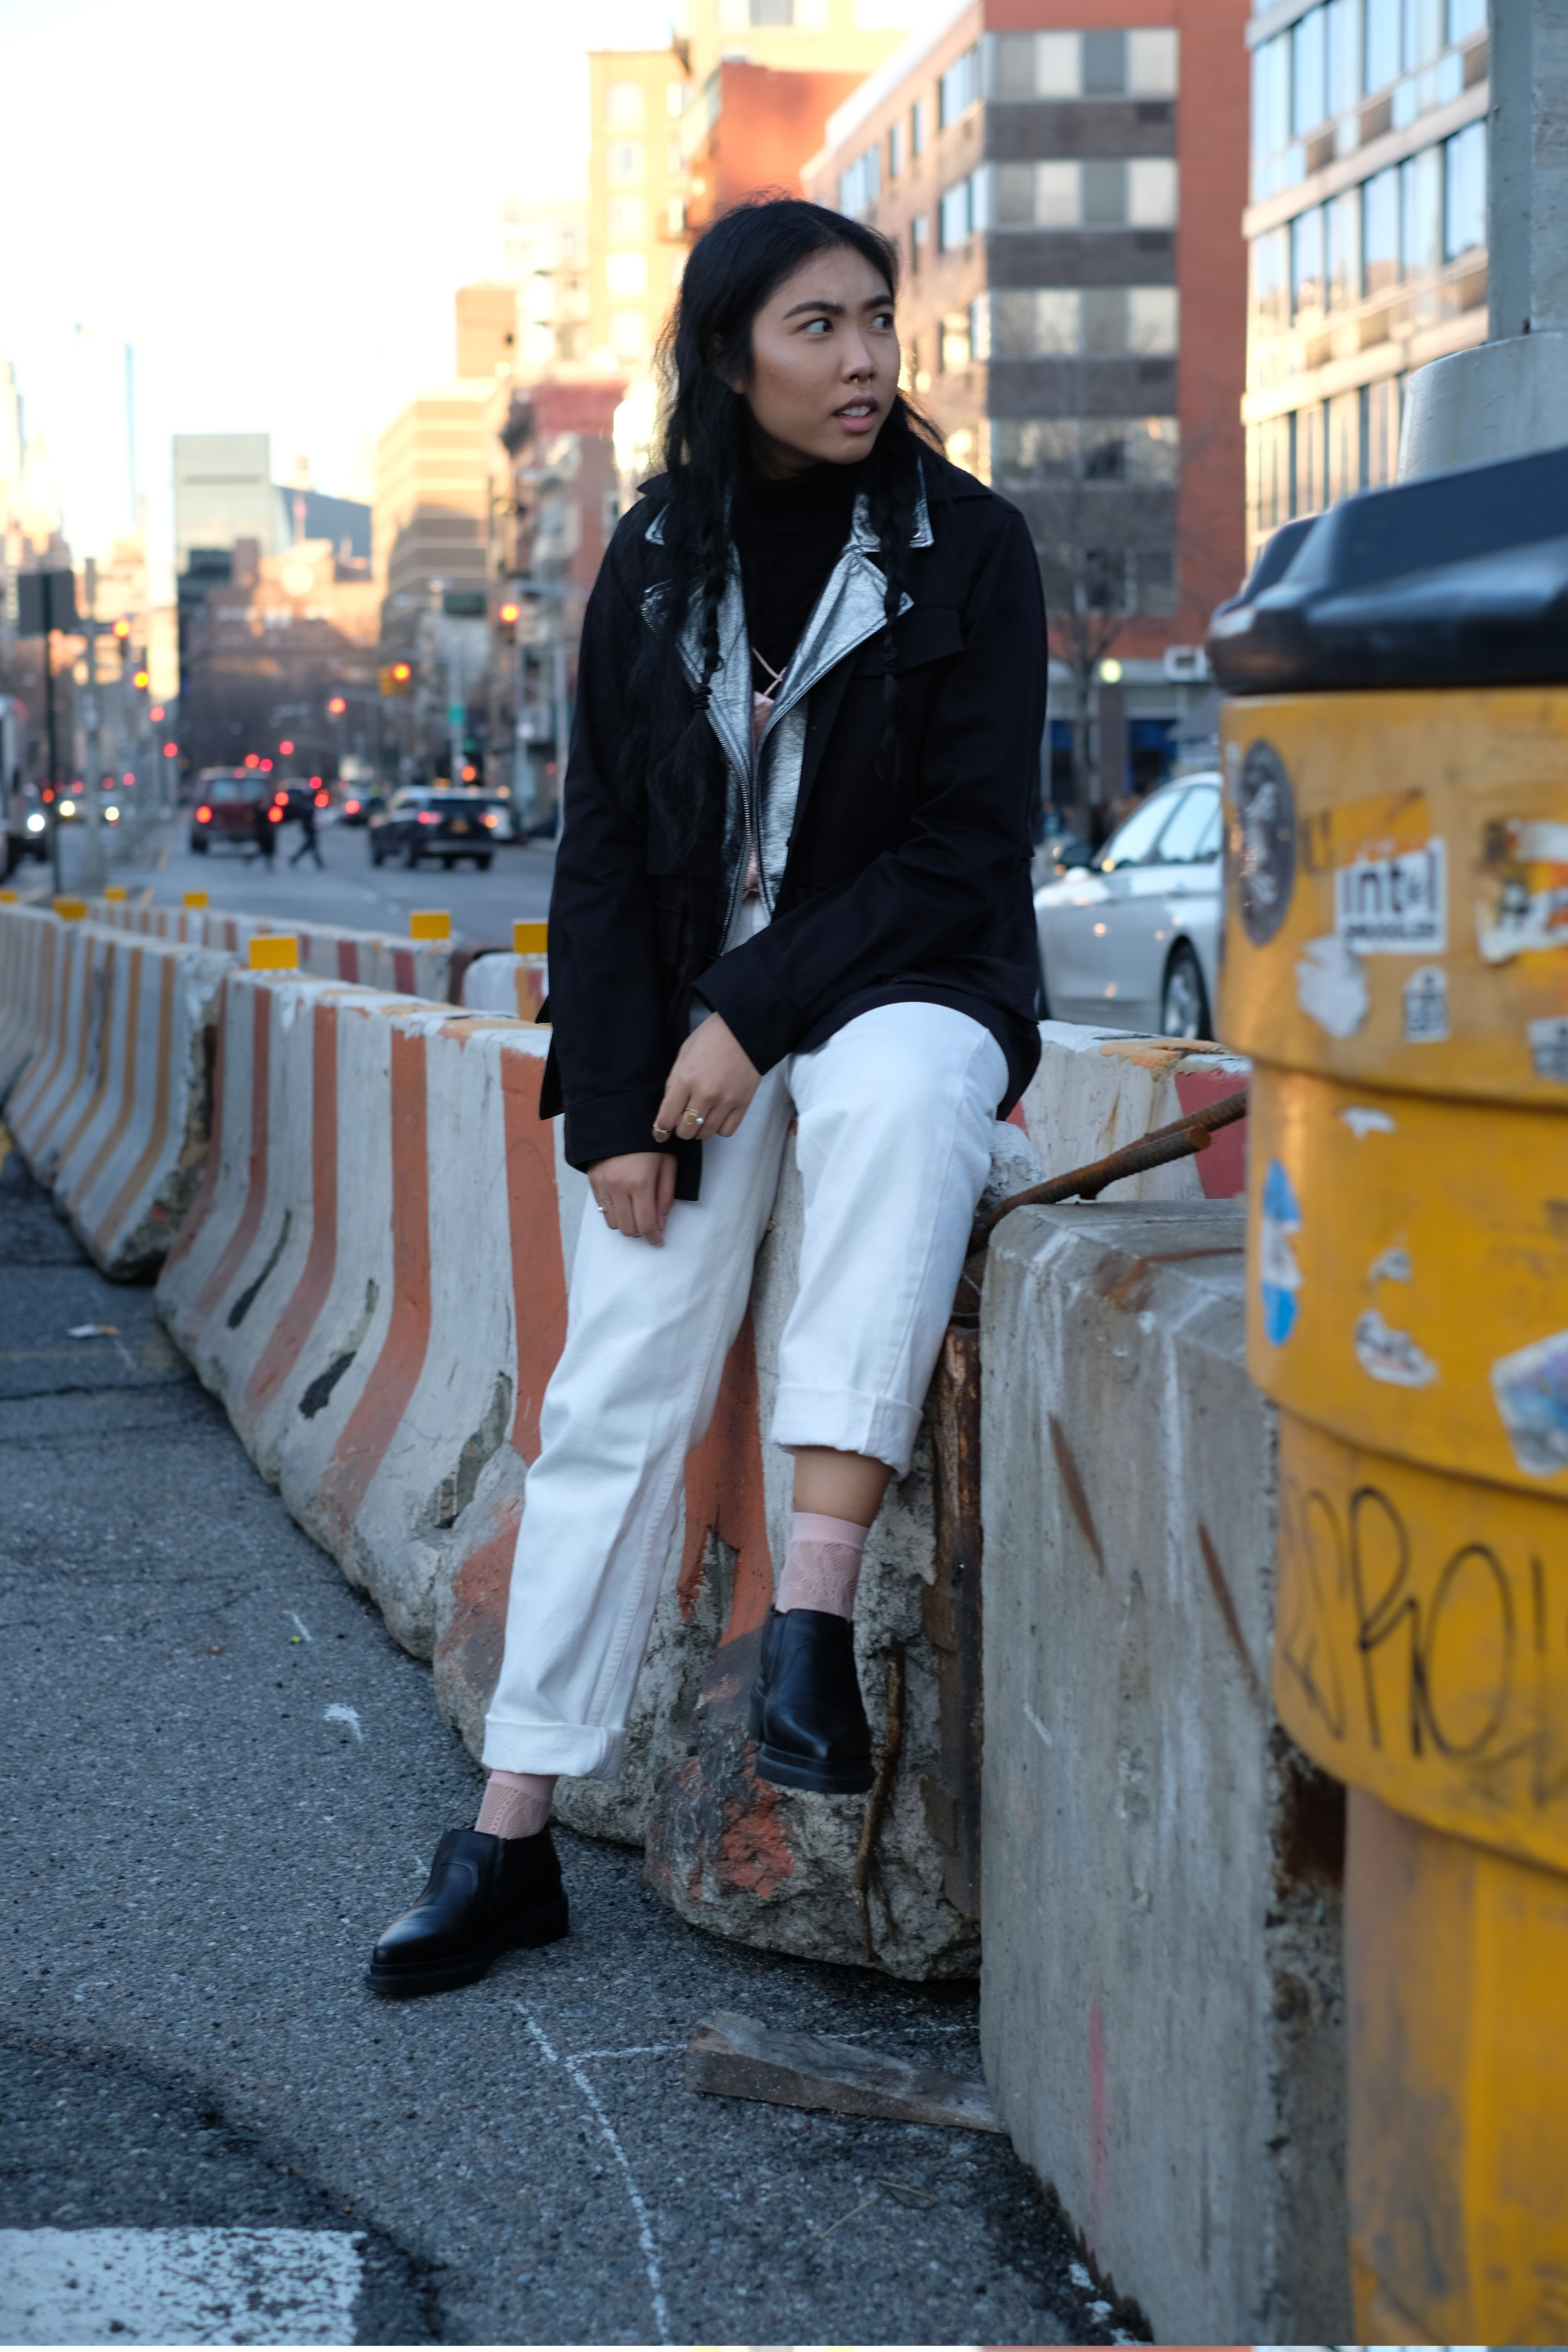 seated Asian girl in white pants and black jacket